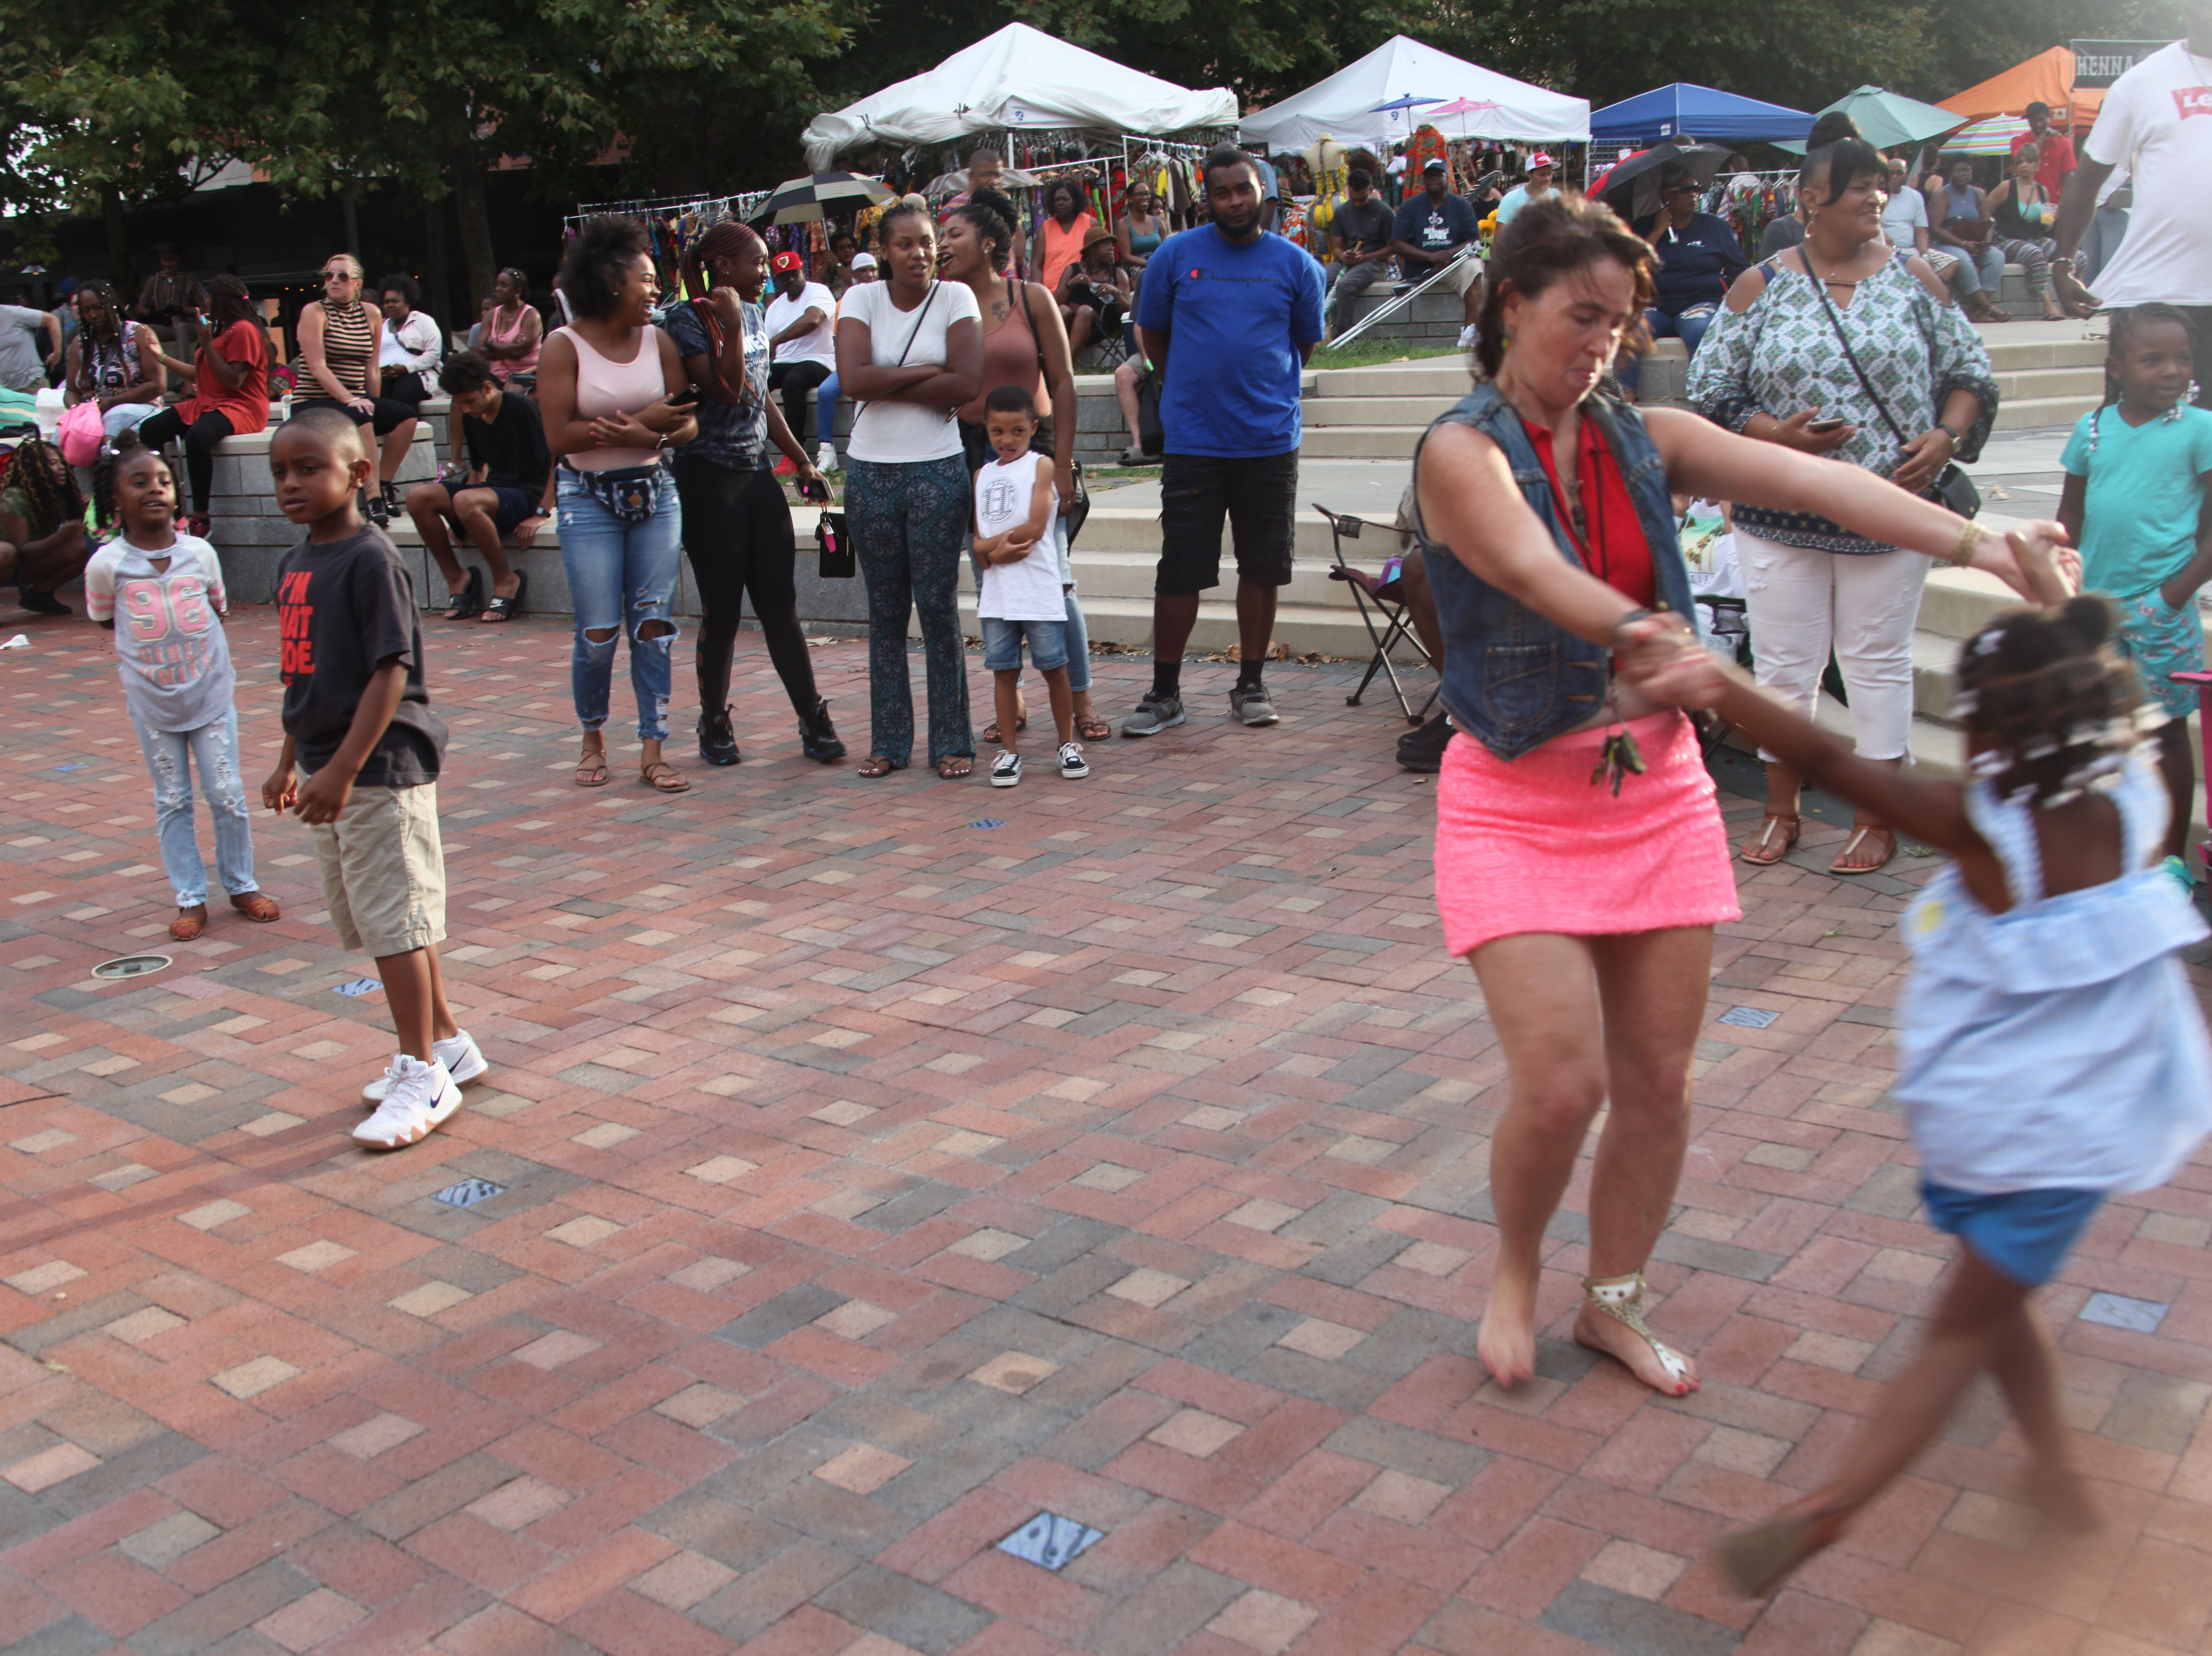 Heidi Dorf dances at the 2018 Goombay Festival at the Roger McGuire Green in Pack Square Park on Sept. 8, 2018.